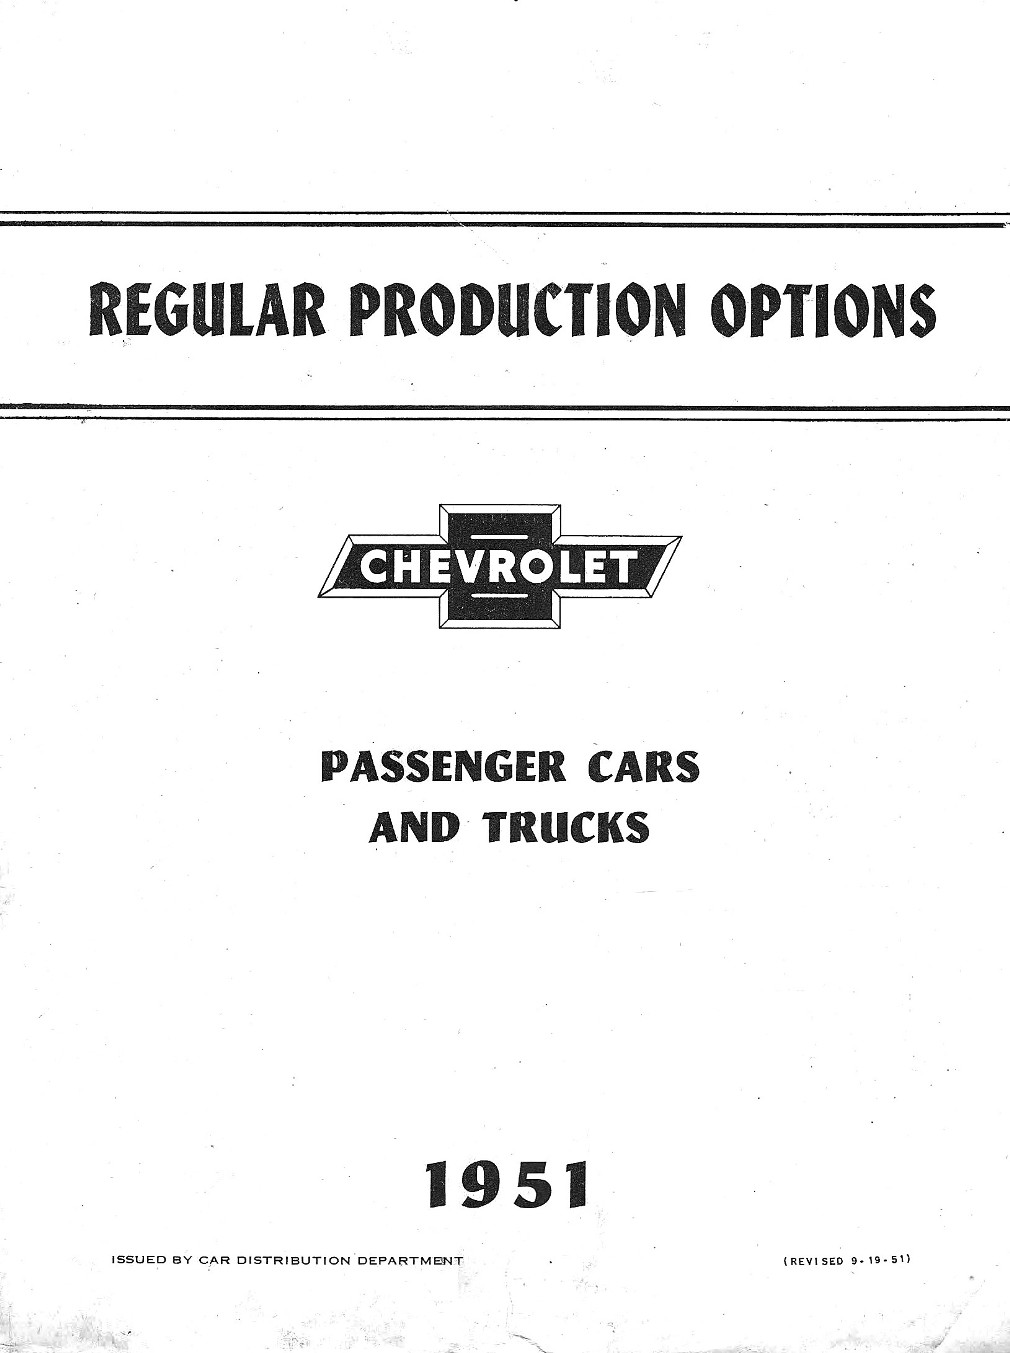 1951 Chevrolet Regular Production Options